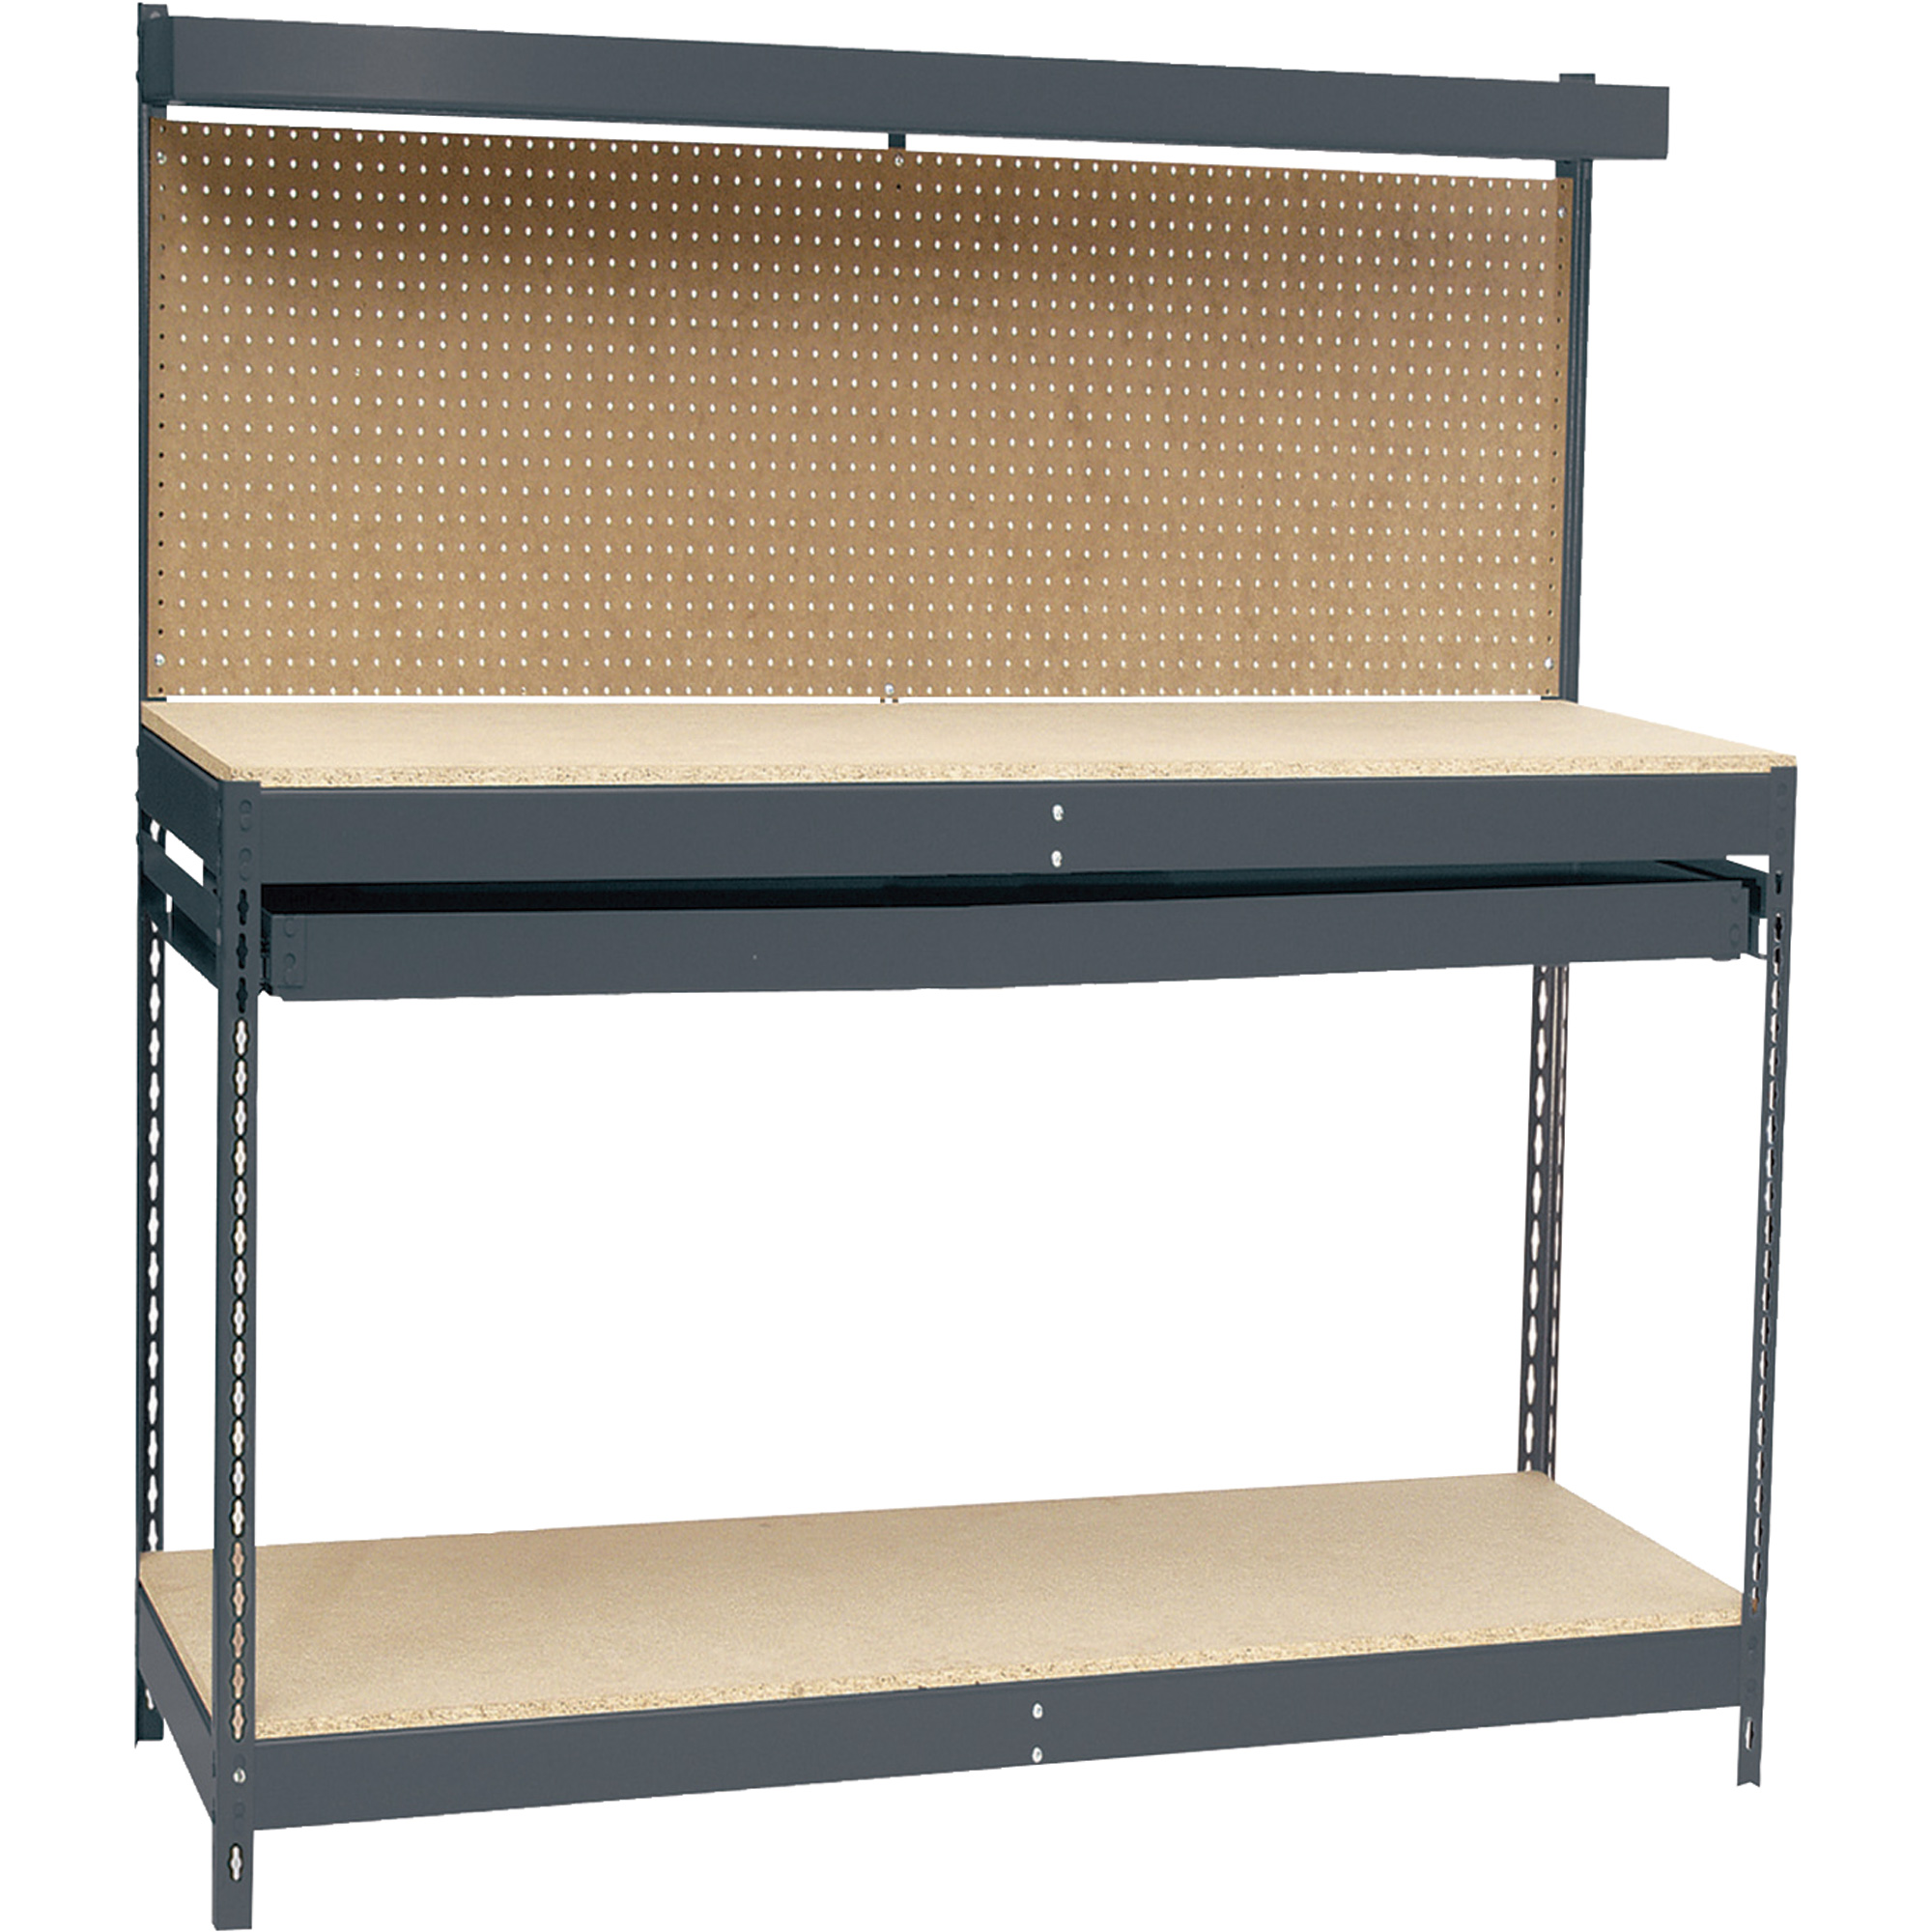 Use Edsal Shelving At Your Garage To Save Your Tools: Charming Steel Edsal Shelving With Hutch For Garage Furniture Ideas